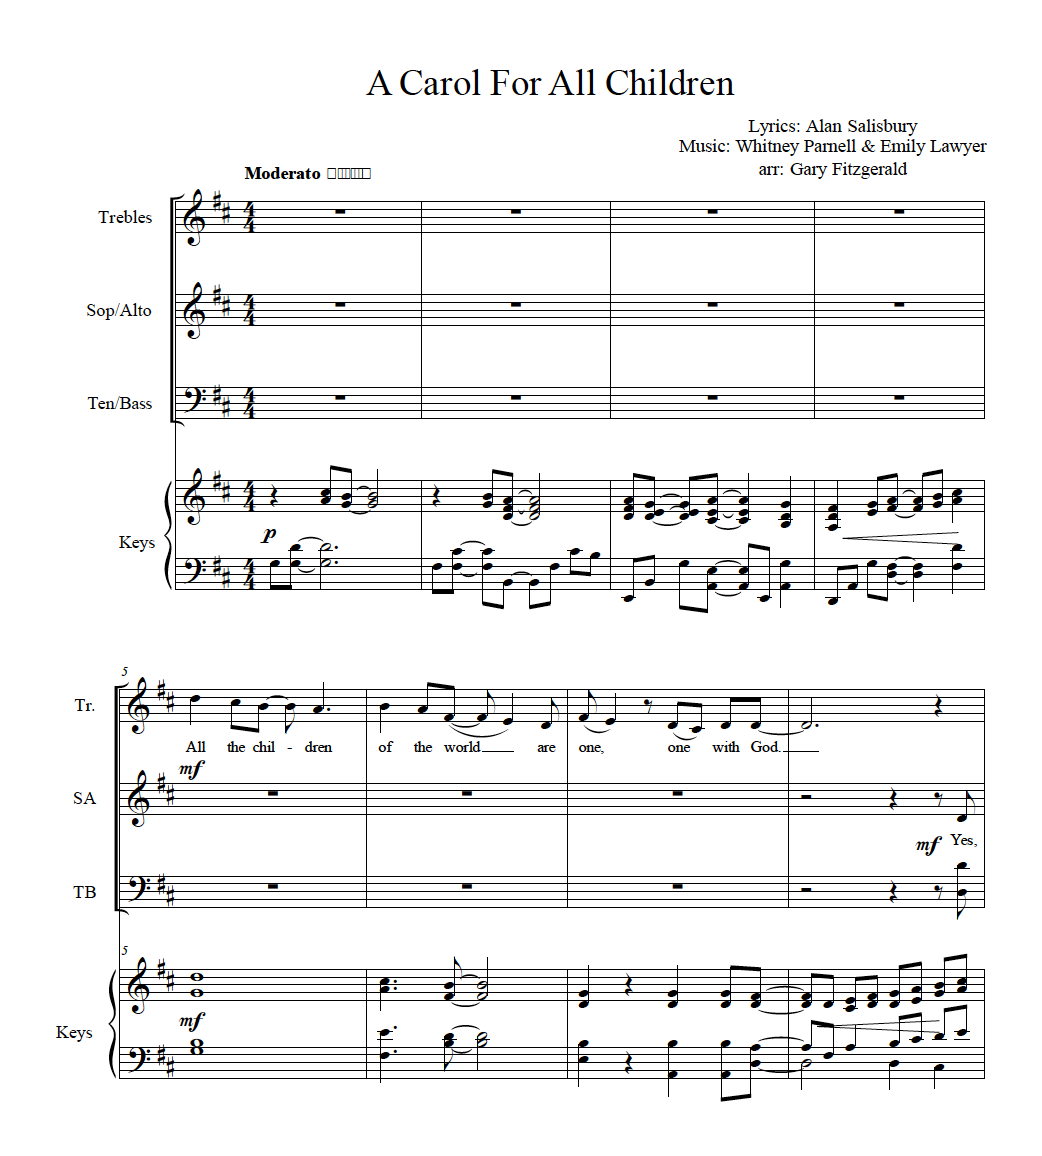 A Carol for All Children (Sheet Music) Digital Download